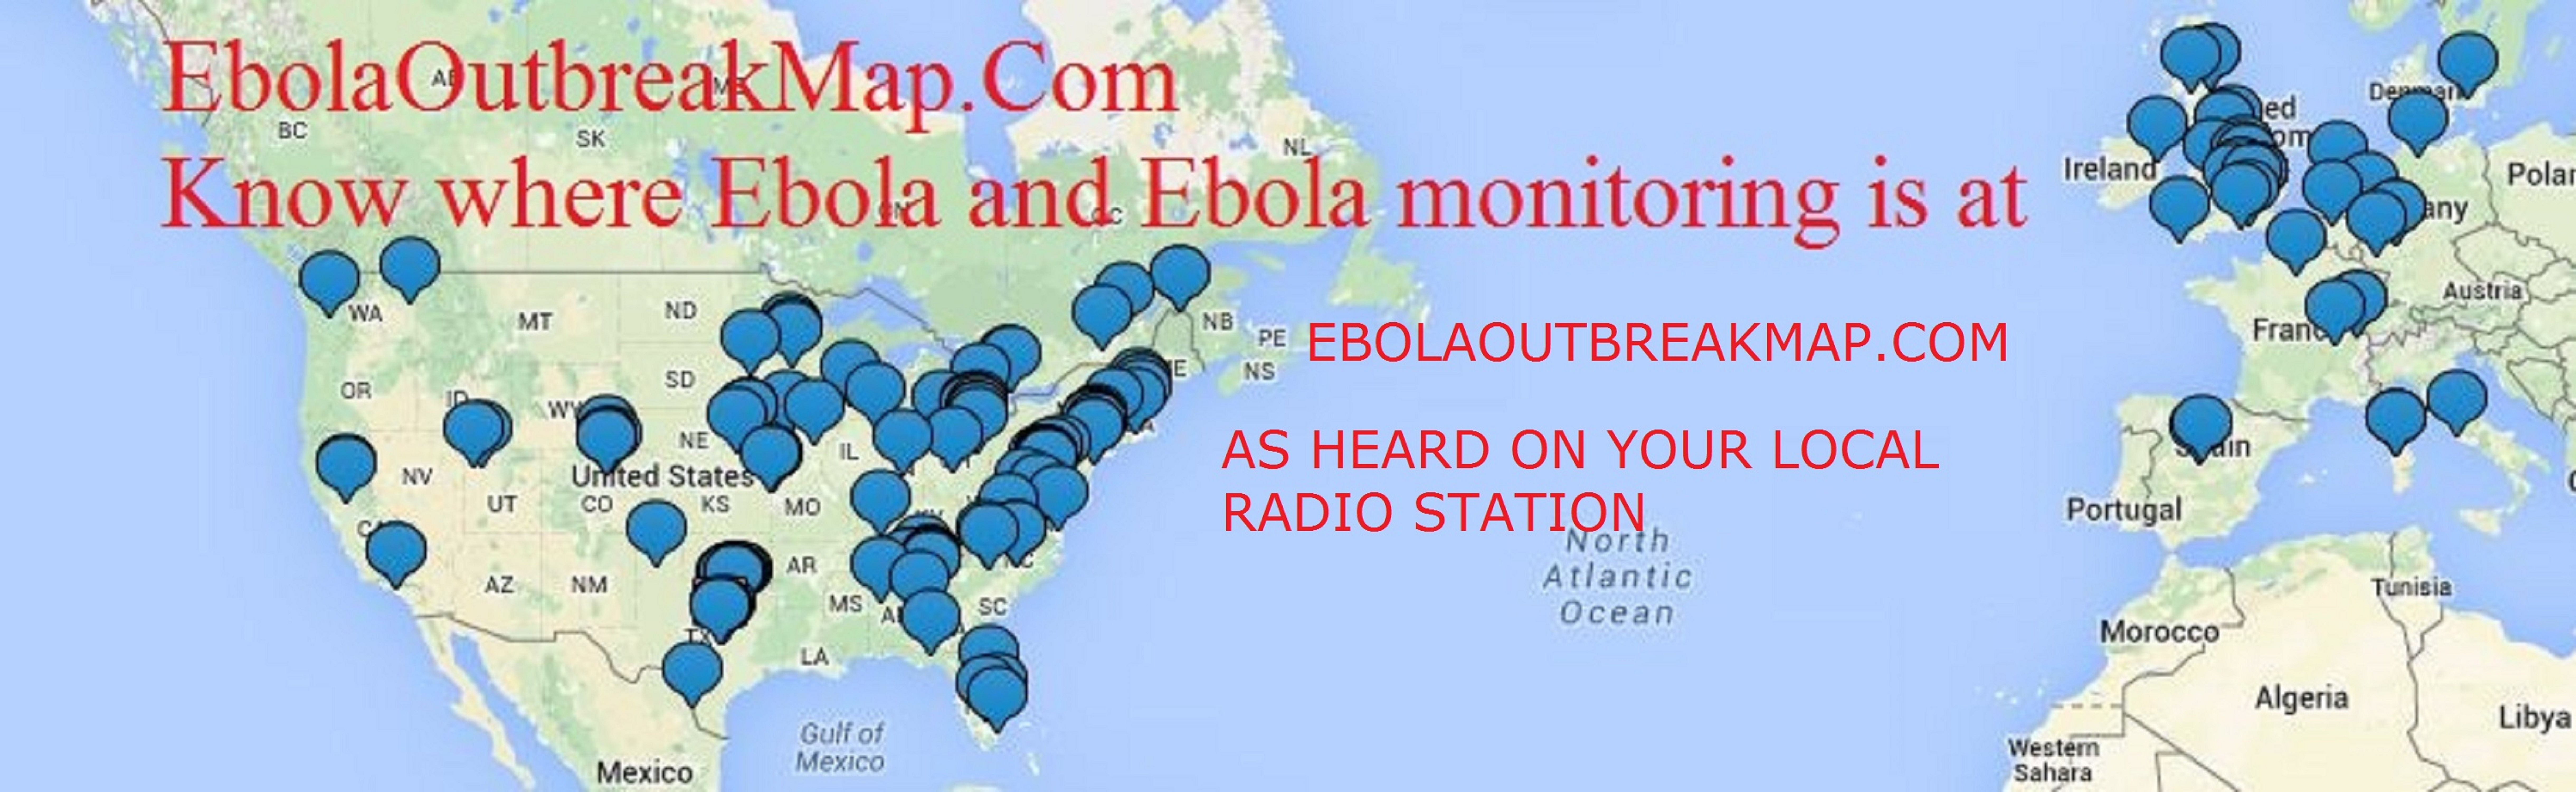 ebolaoutbreakmap.com - cover